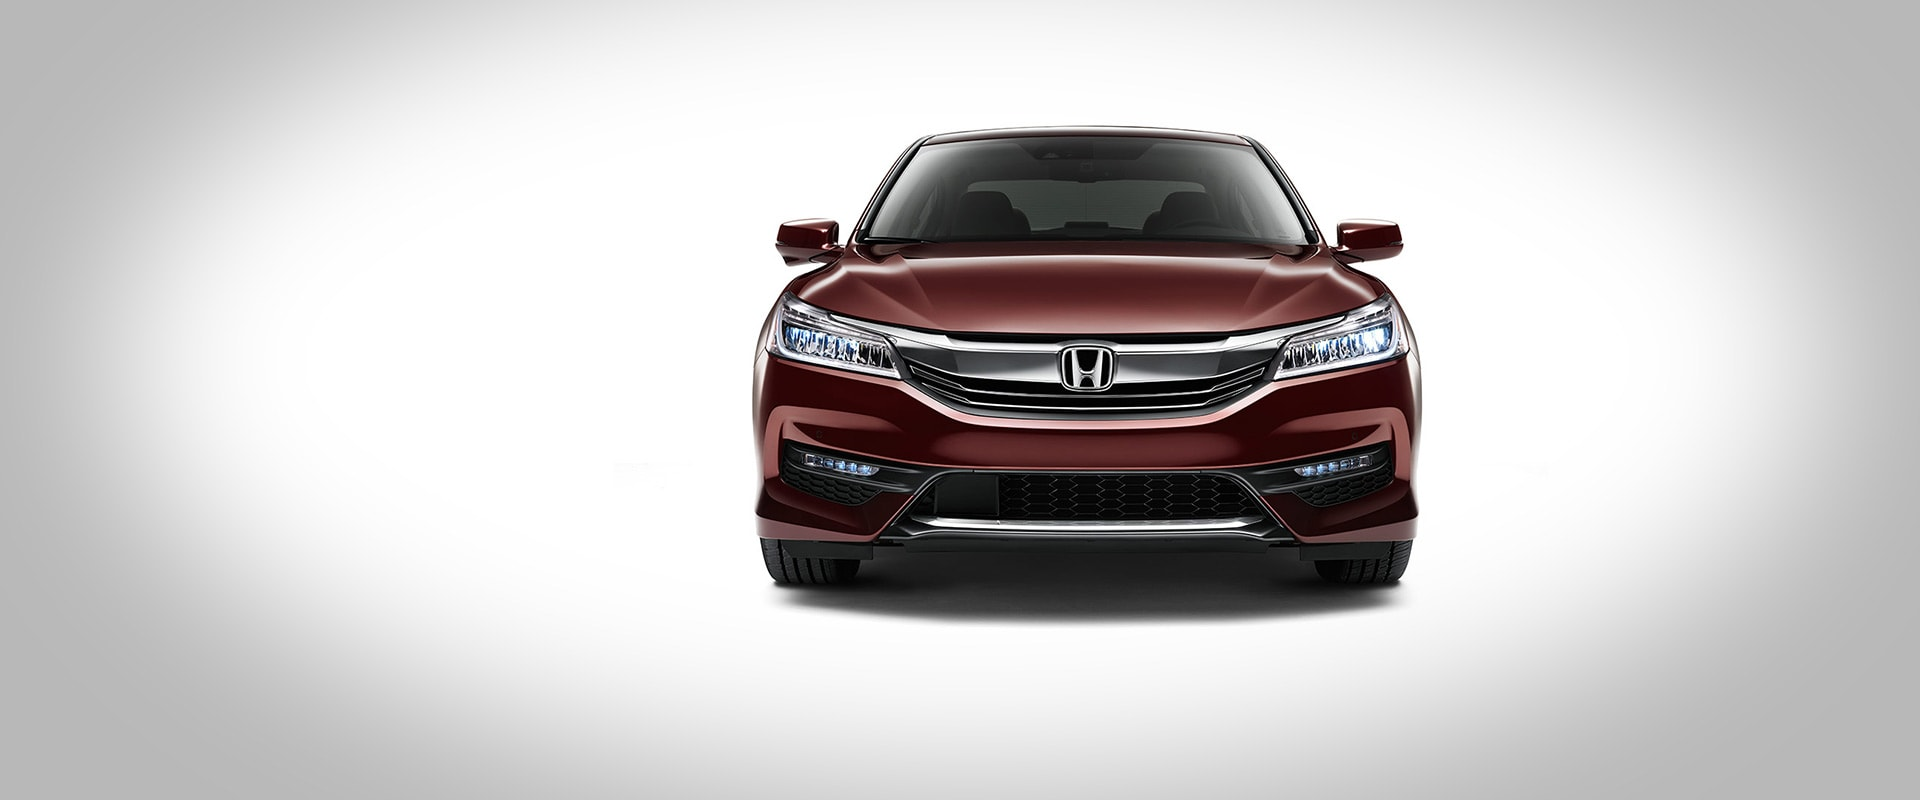 Honda Accord Official Site >> 2016 Honda Accord Sedan Features Details Official Site